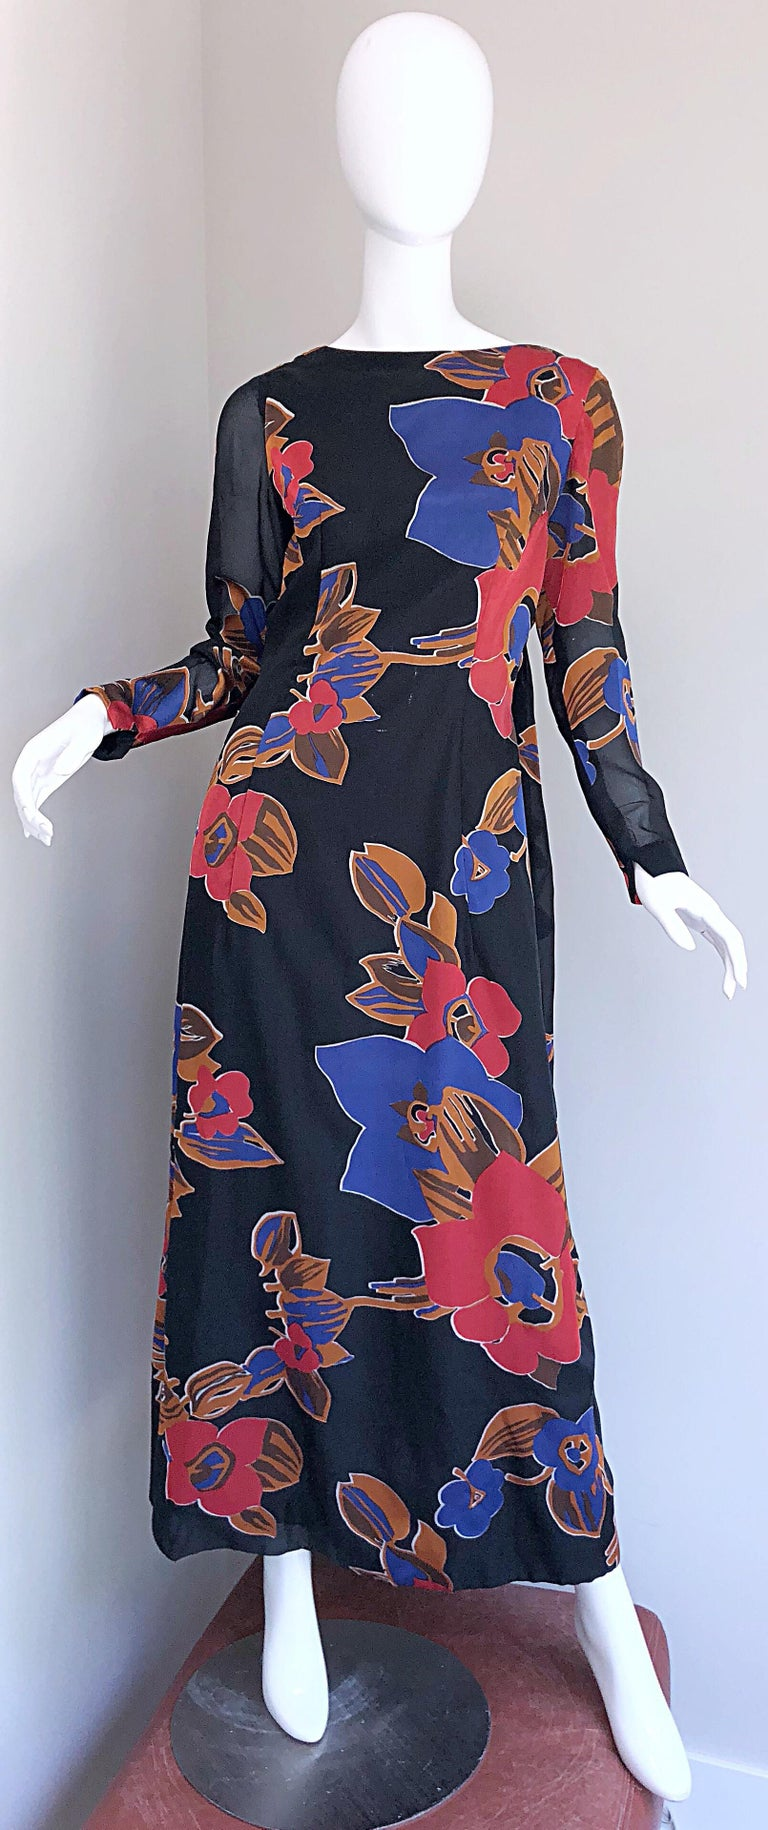 1960s John Boyle Bishop Black + Brown + Red Abstract Trained 60s Gown Maxi Dress For Sale 10